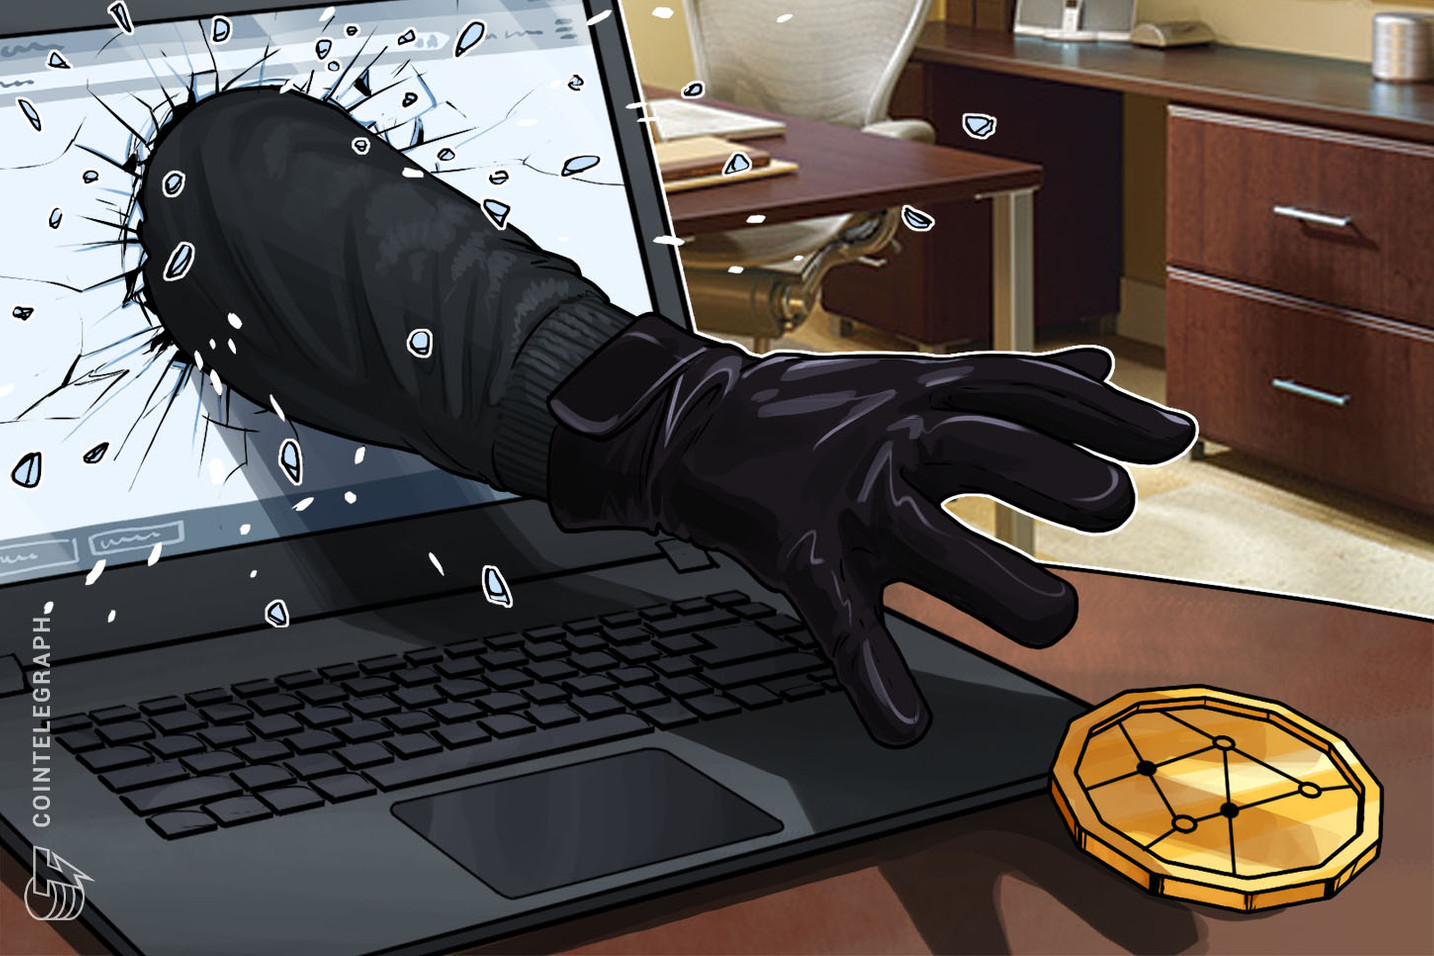 Three Thai Siblings Accused of $24 Million Bitcoin Scam Plead 'Not Guilty'